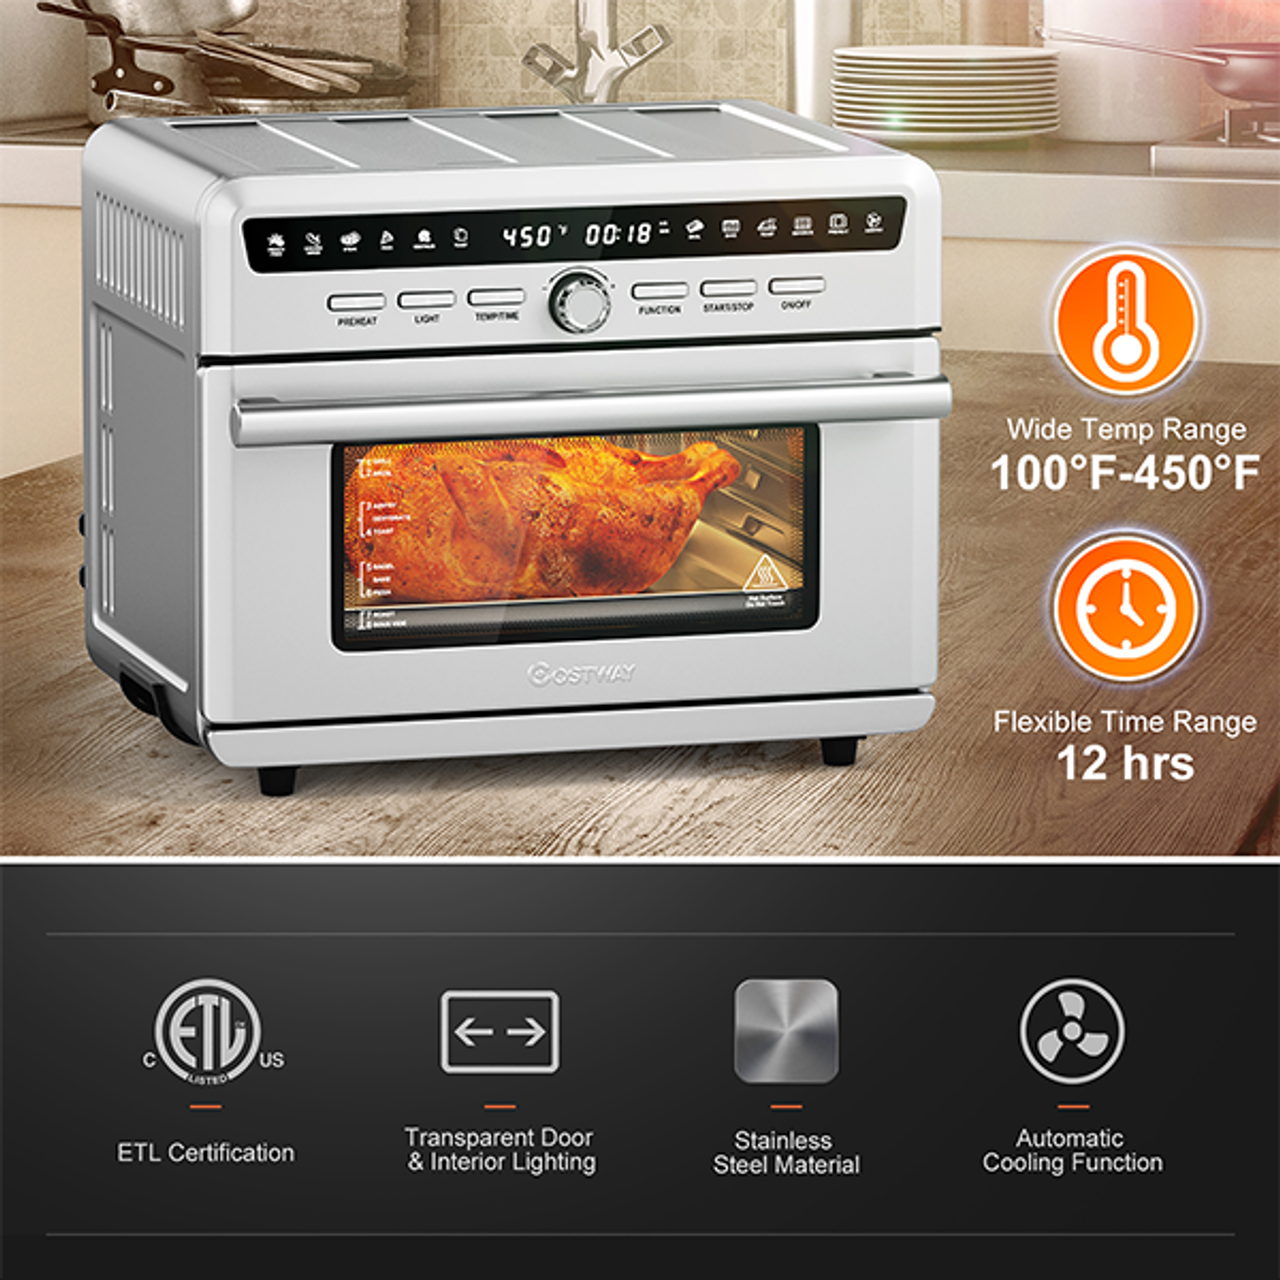 26.4-Quart 10-in-1 Silver Air Fryer Toaster Oven $154.99 (48% OFF)